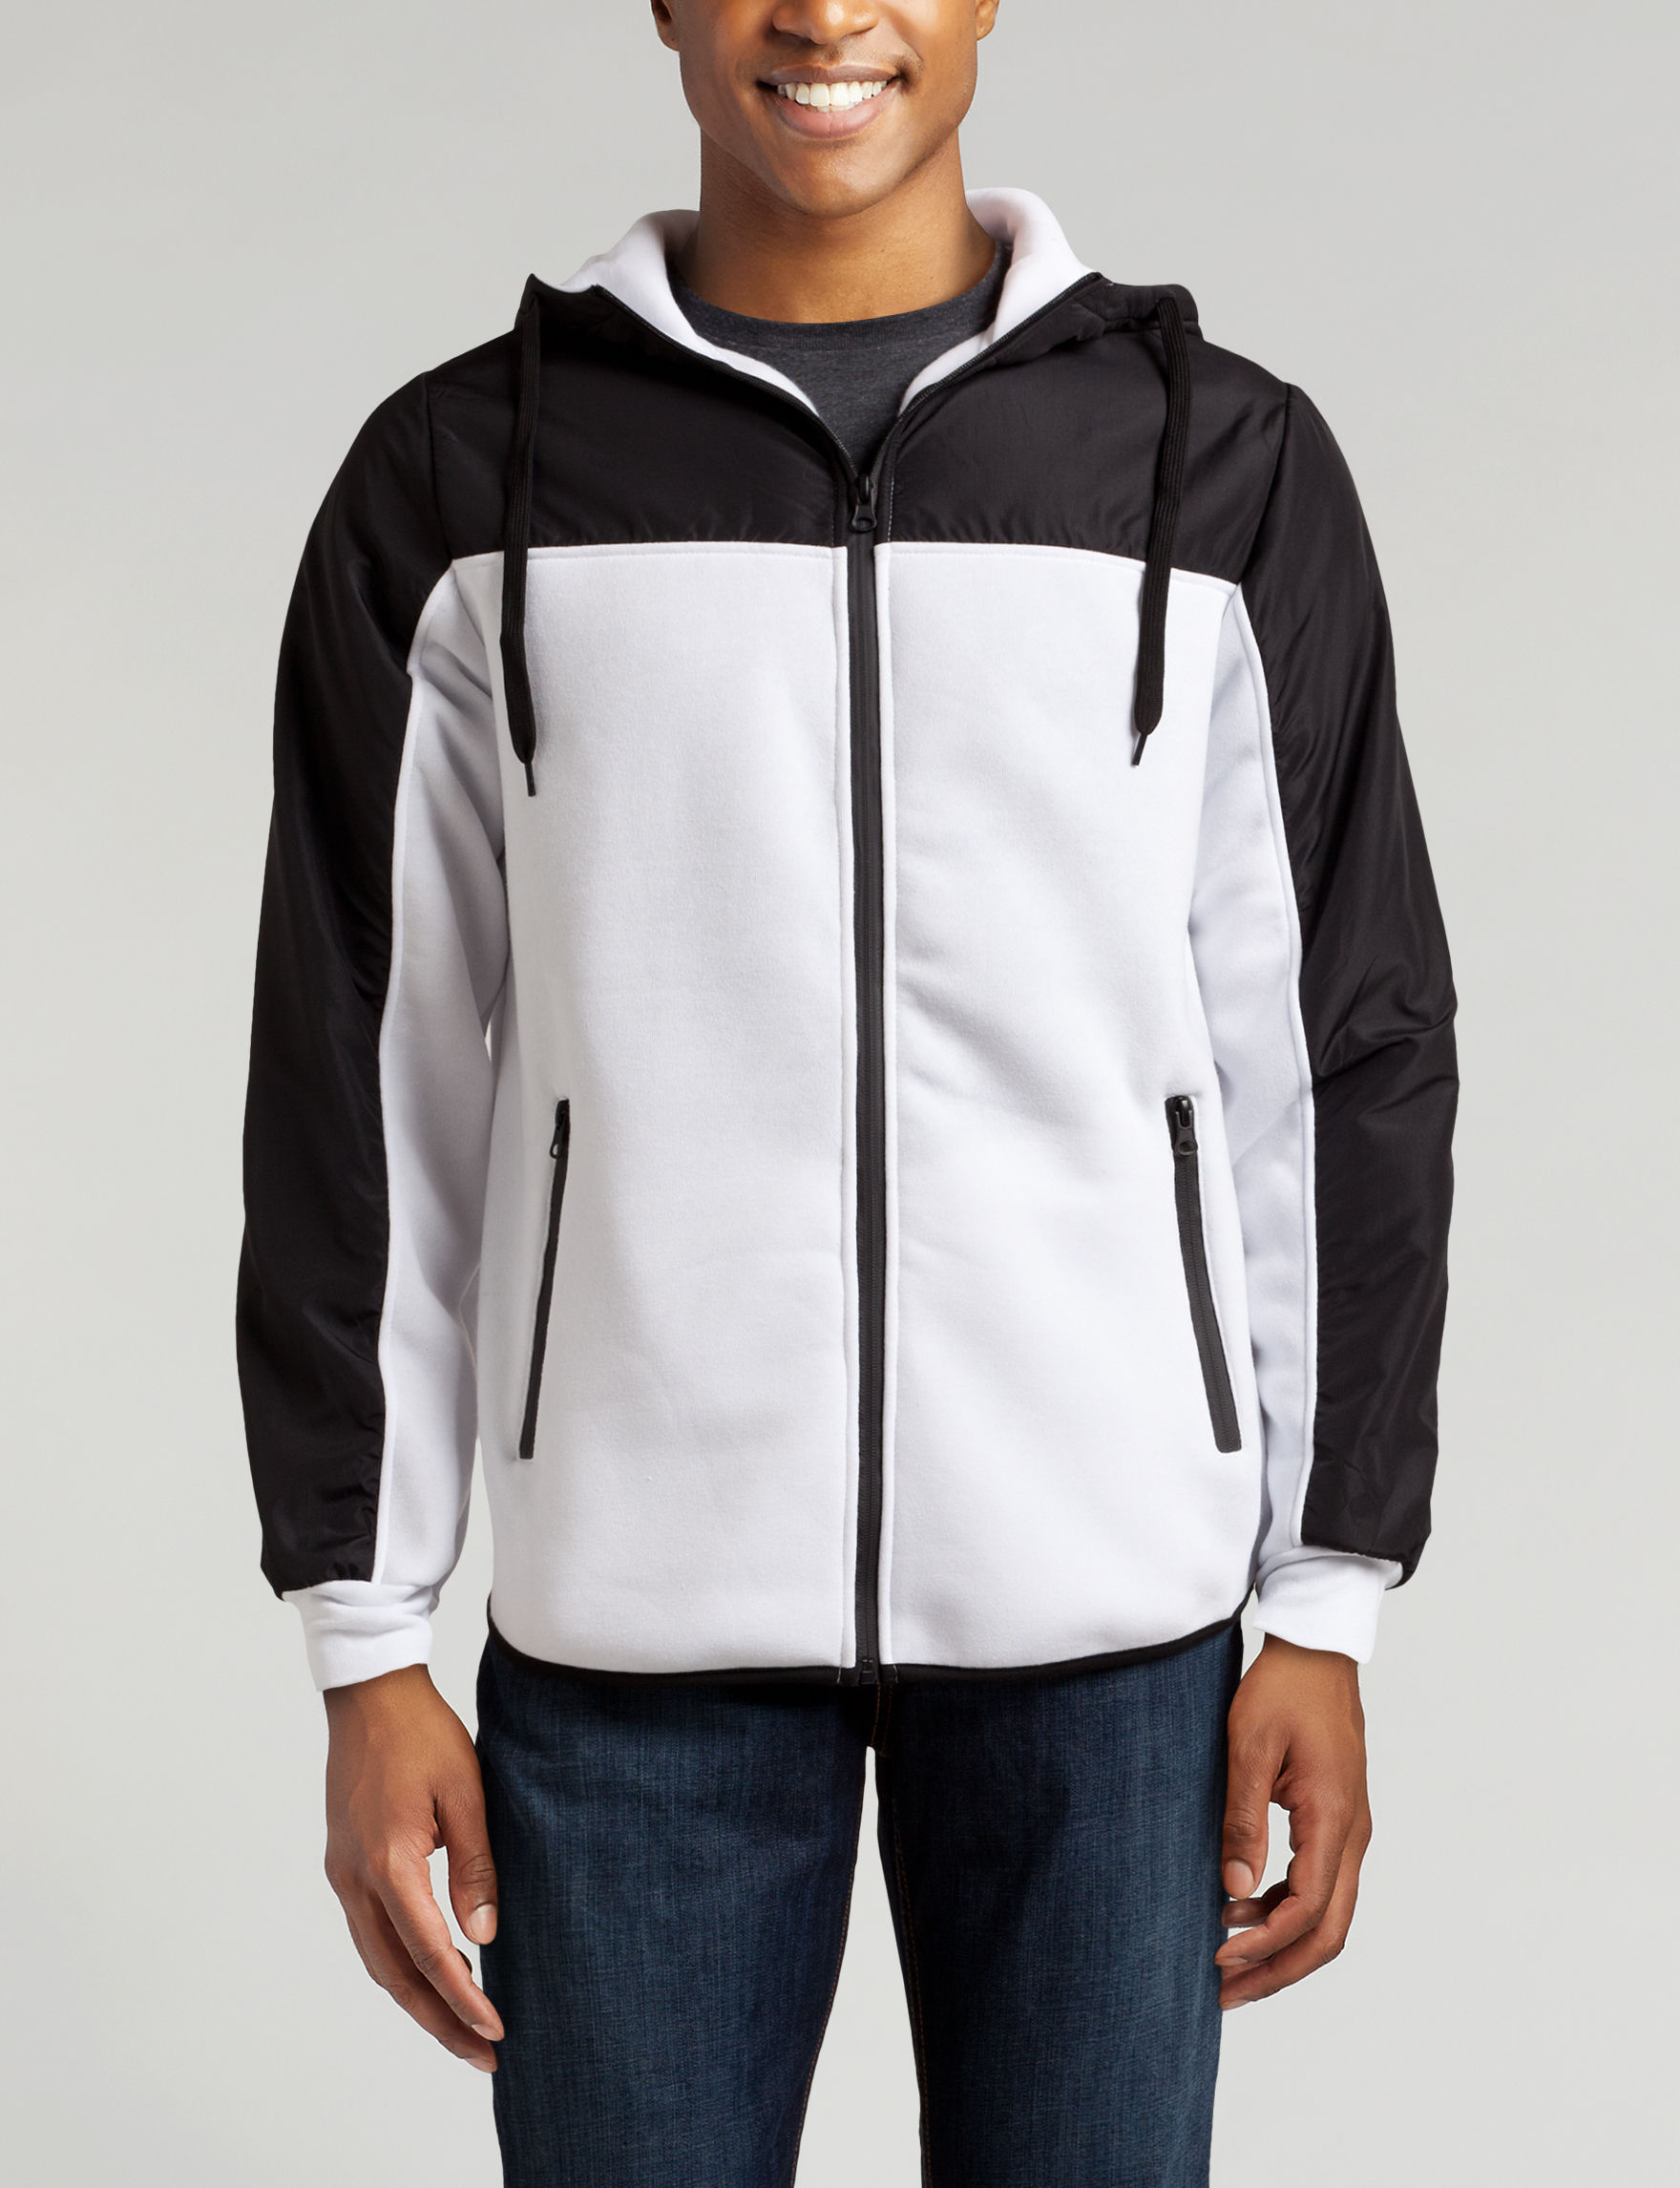 Point Zero White / Black Lightweight Jackets & Blazers